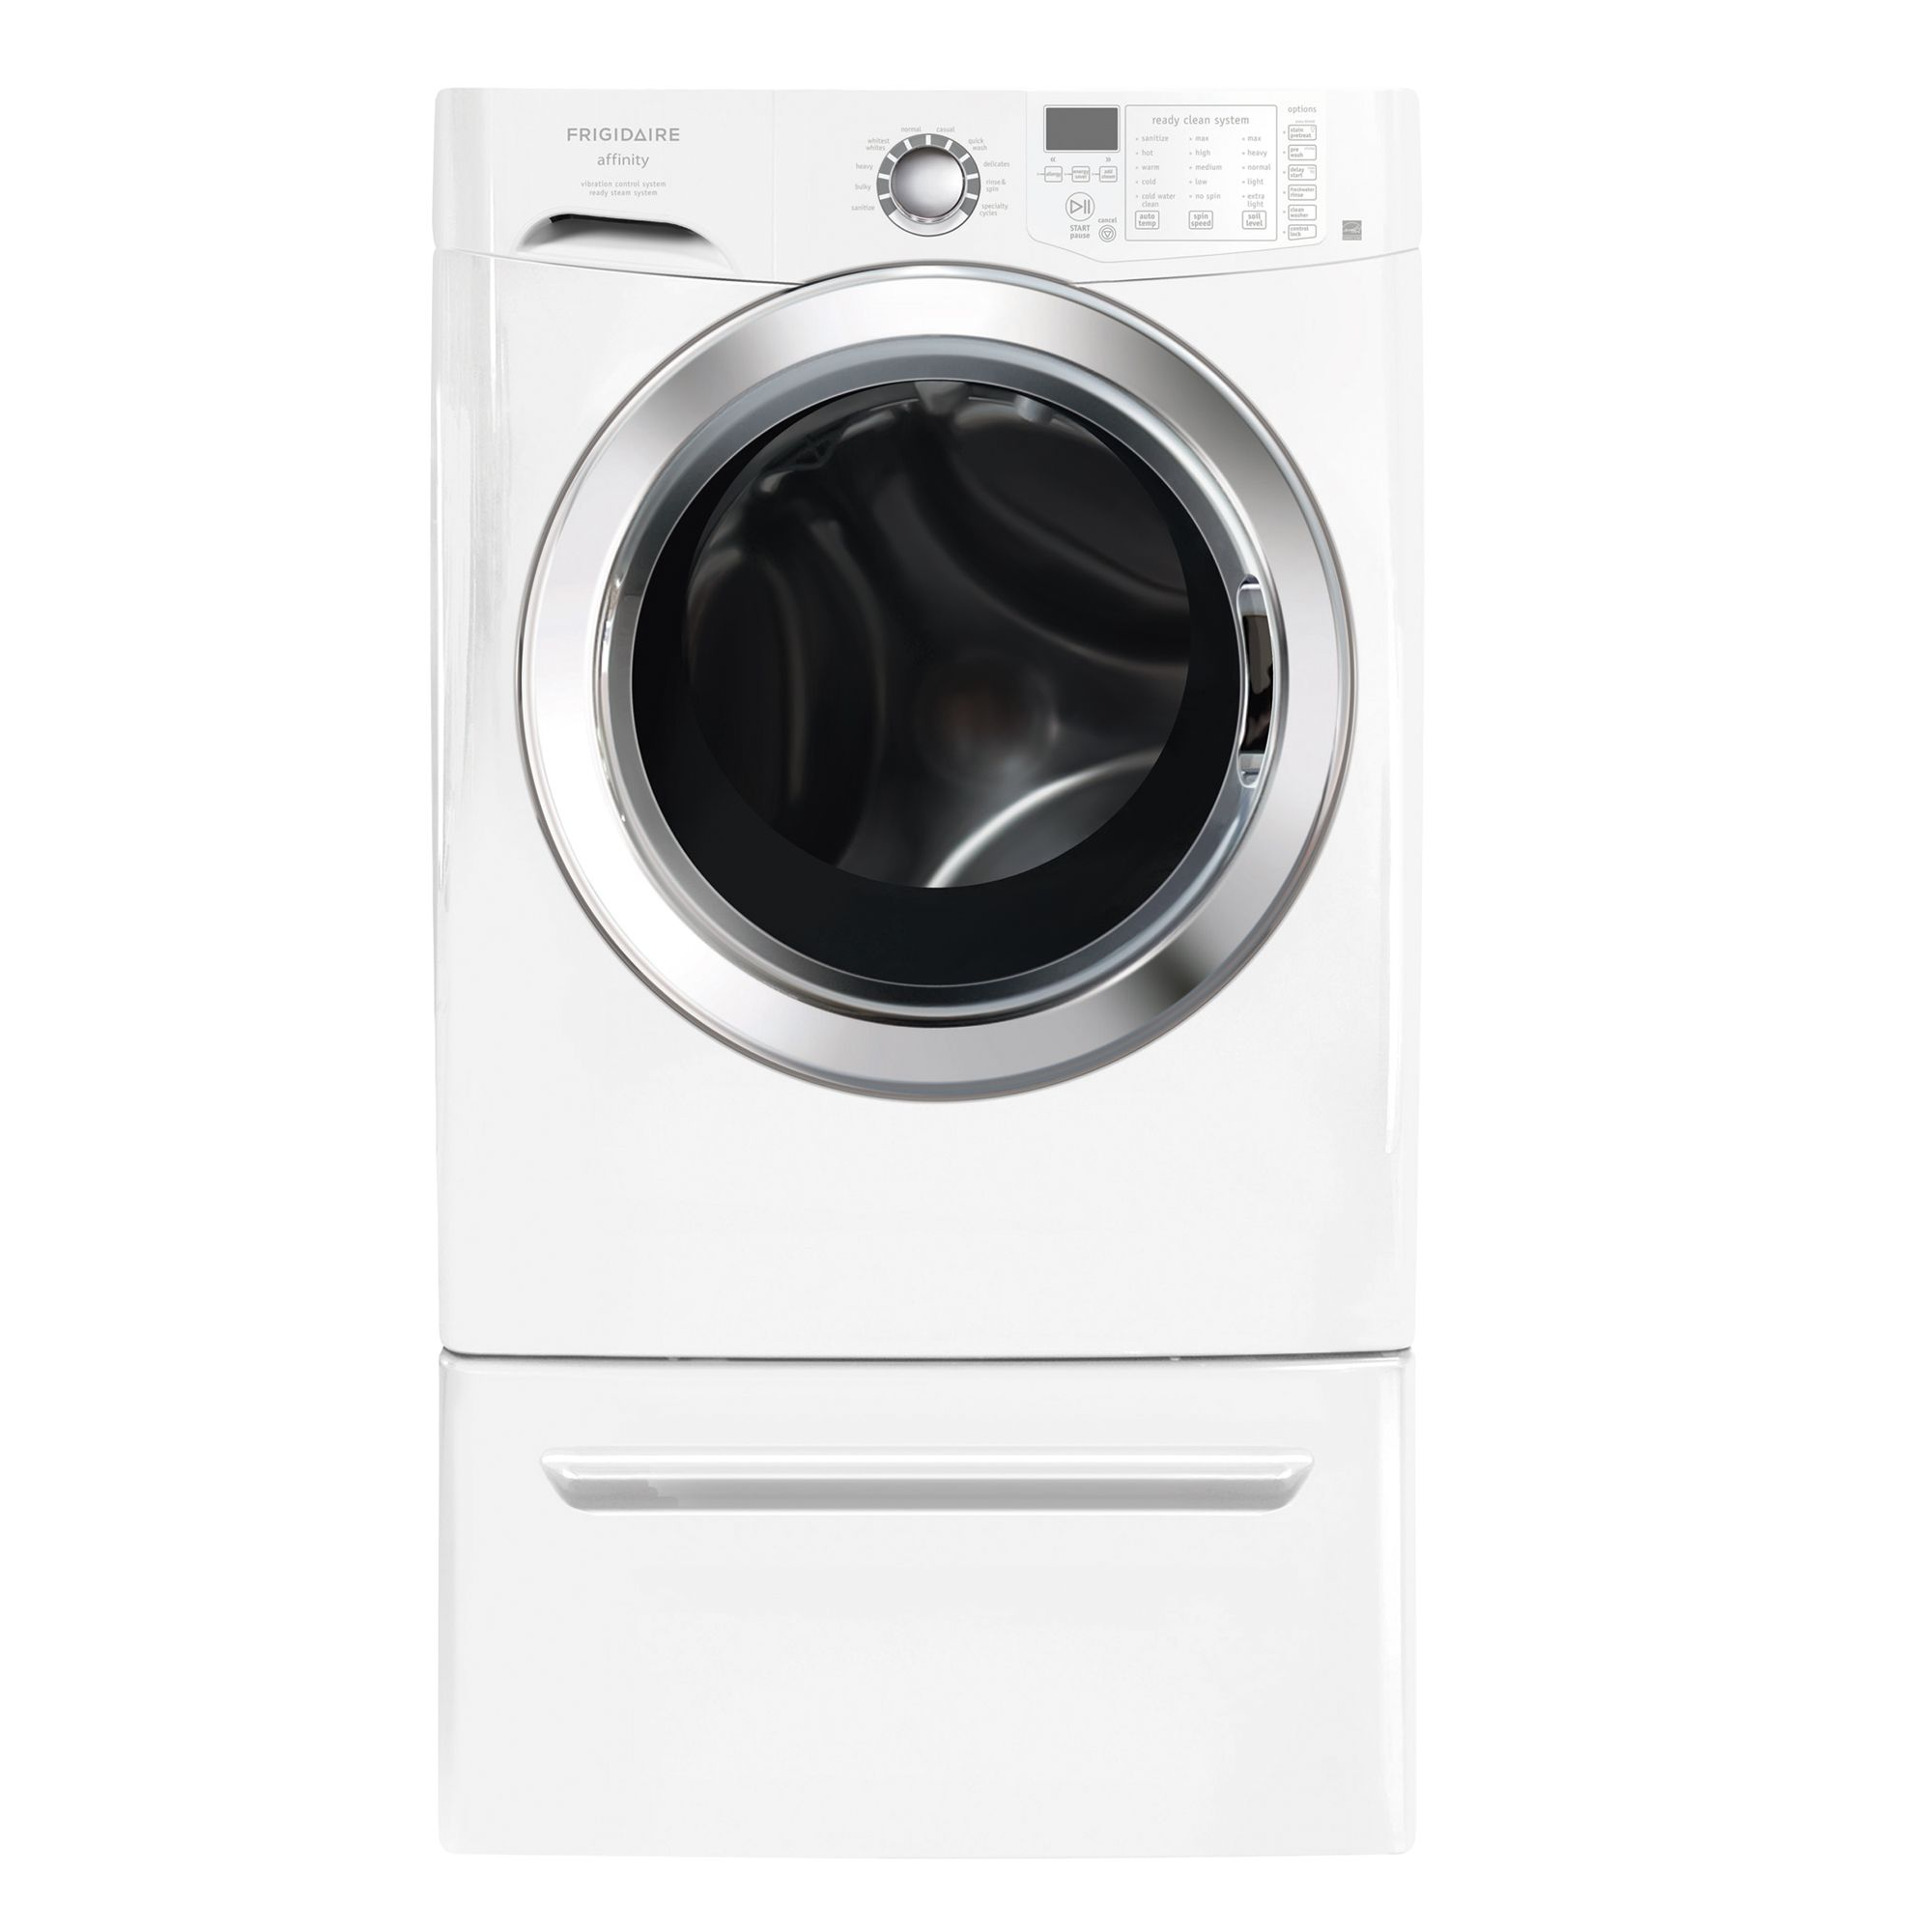 Frigidaire Affinity 3.8 cu. ft. Front-Load Steam Washer (FAFS4474LW)